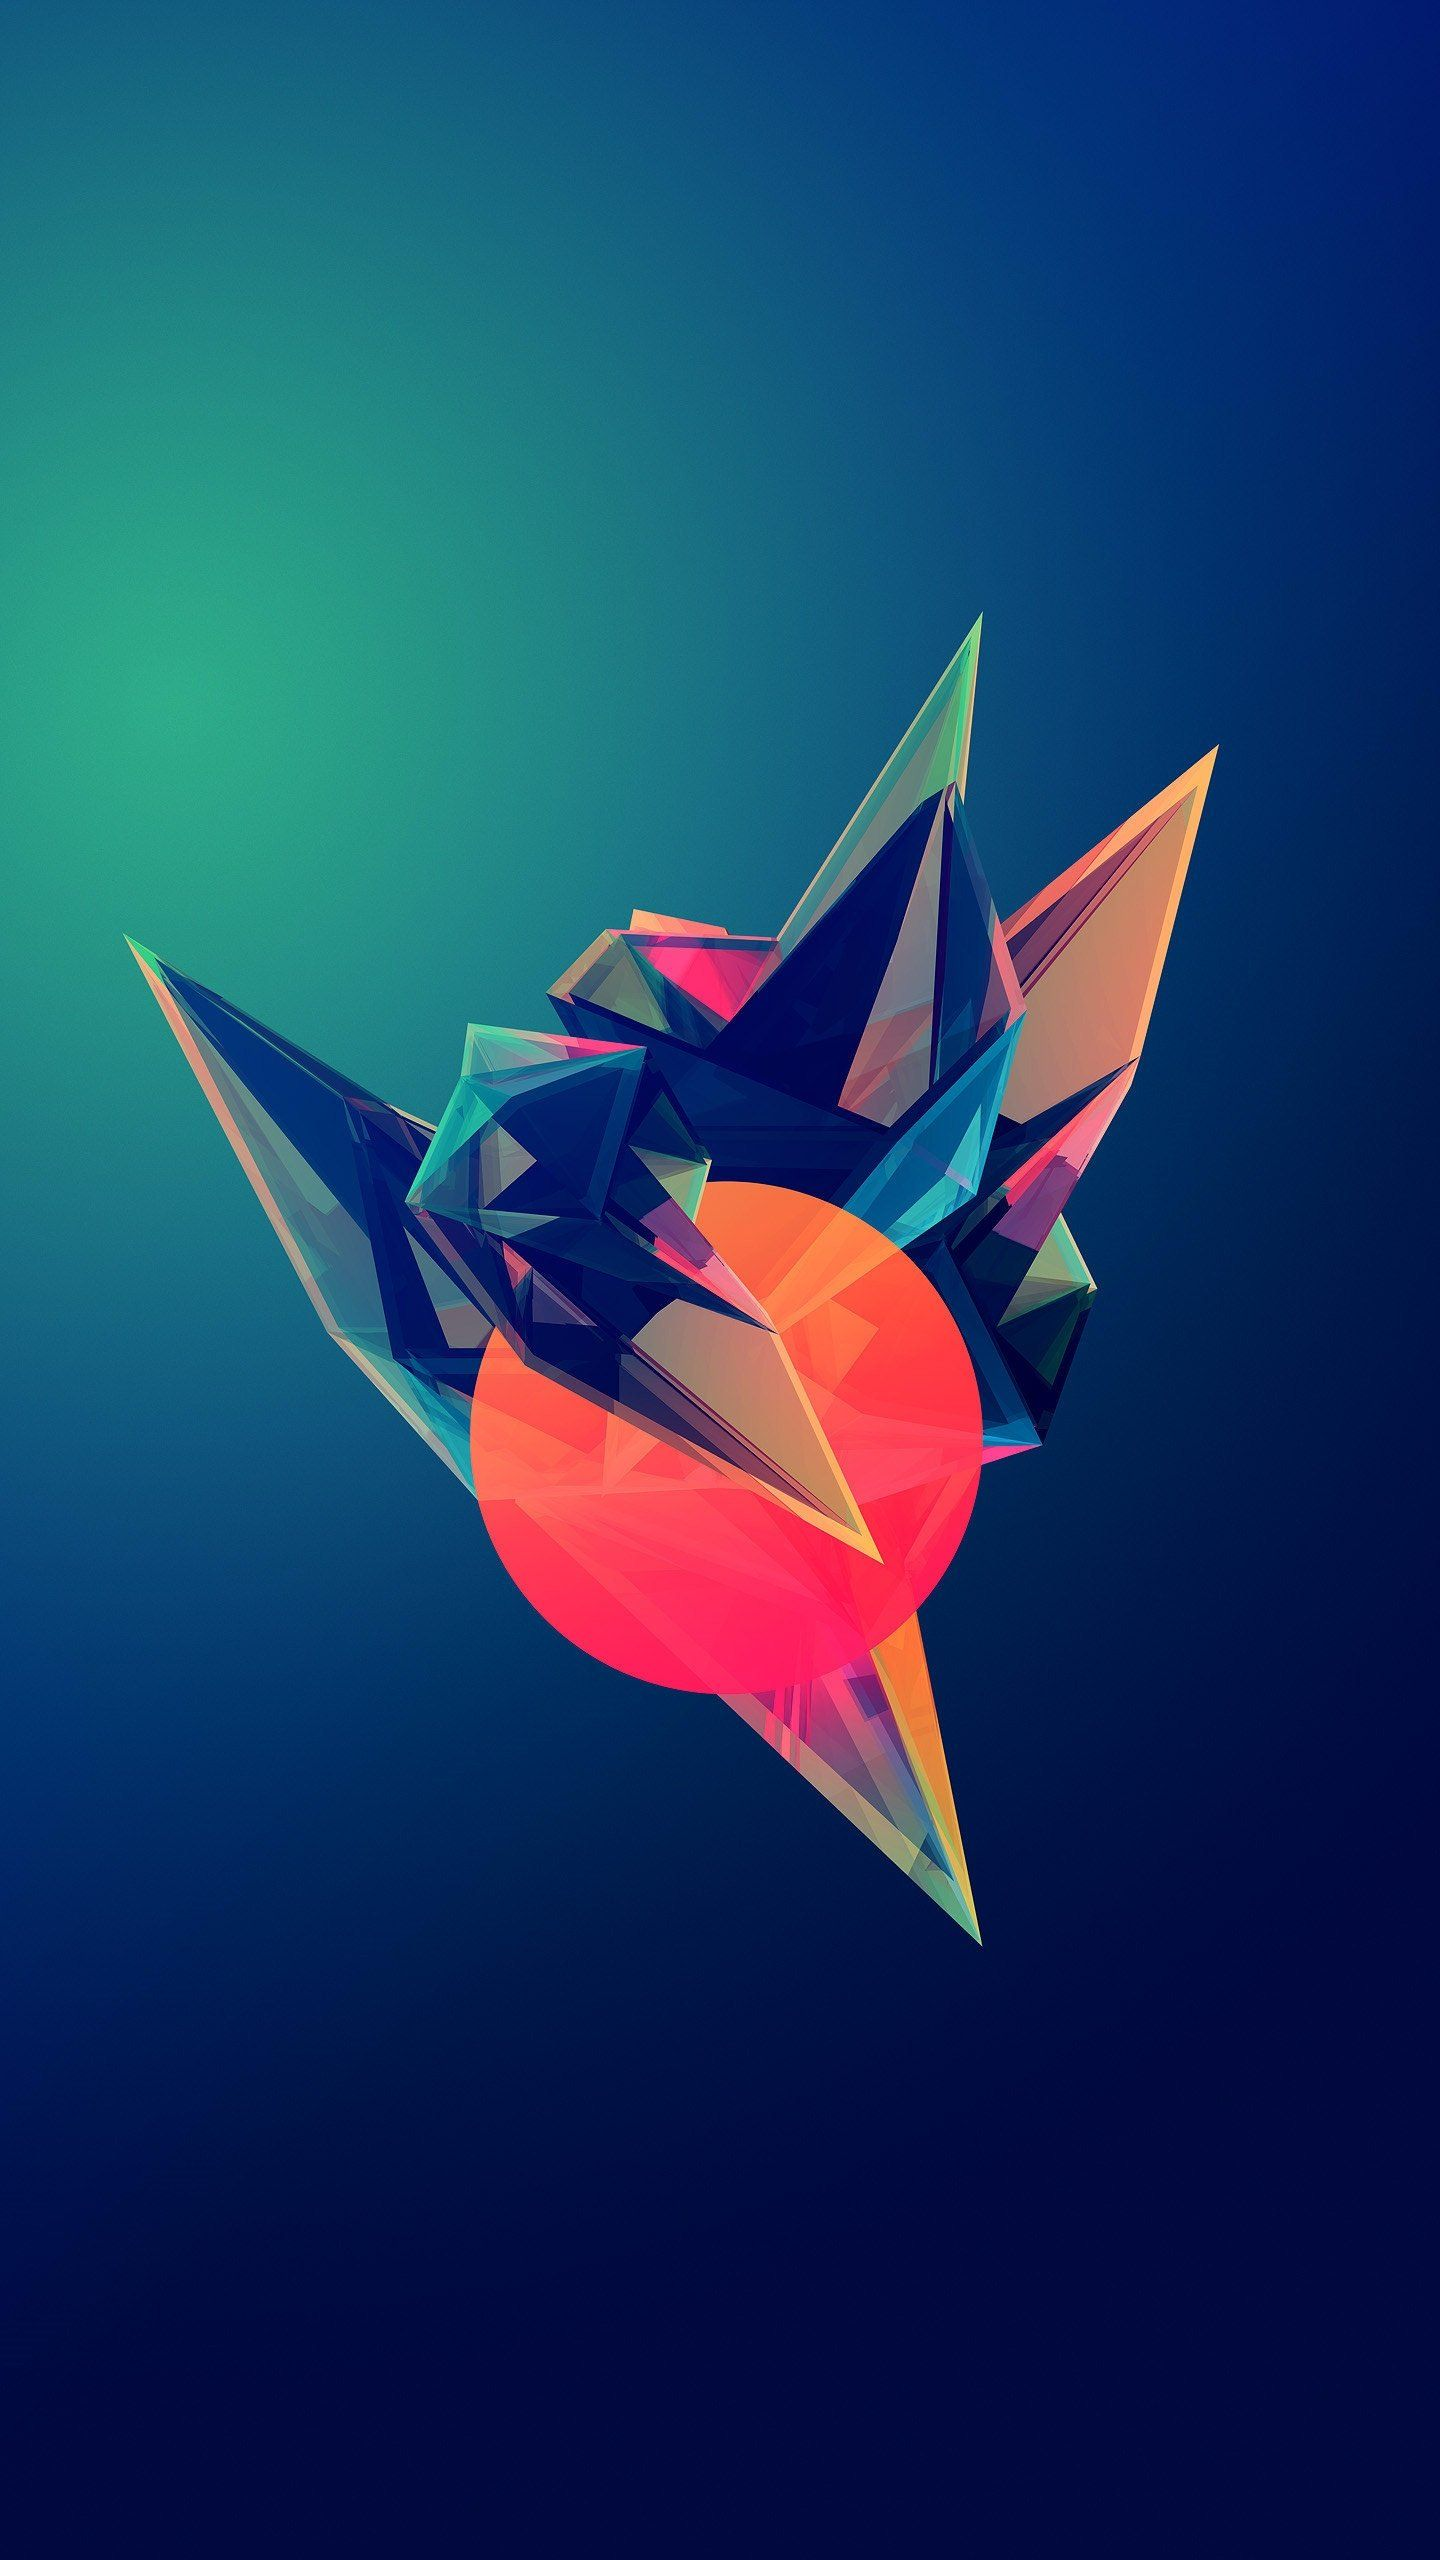 Low Poly Wallpapers 2560x1440 R Wallpapers Hd Phone Wallpapers Mobile Wallpaper Android Wallpaper